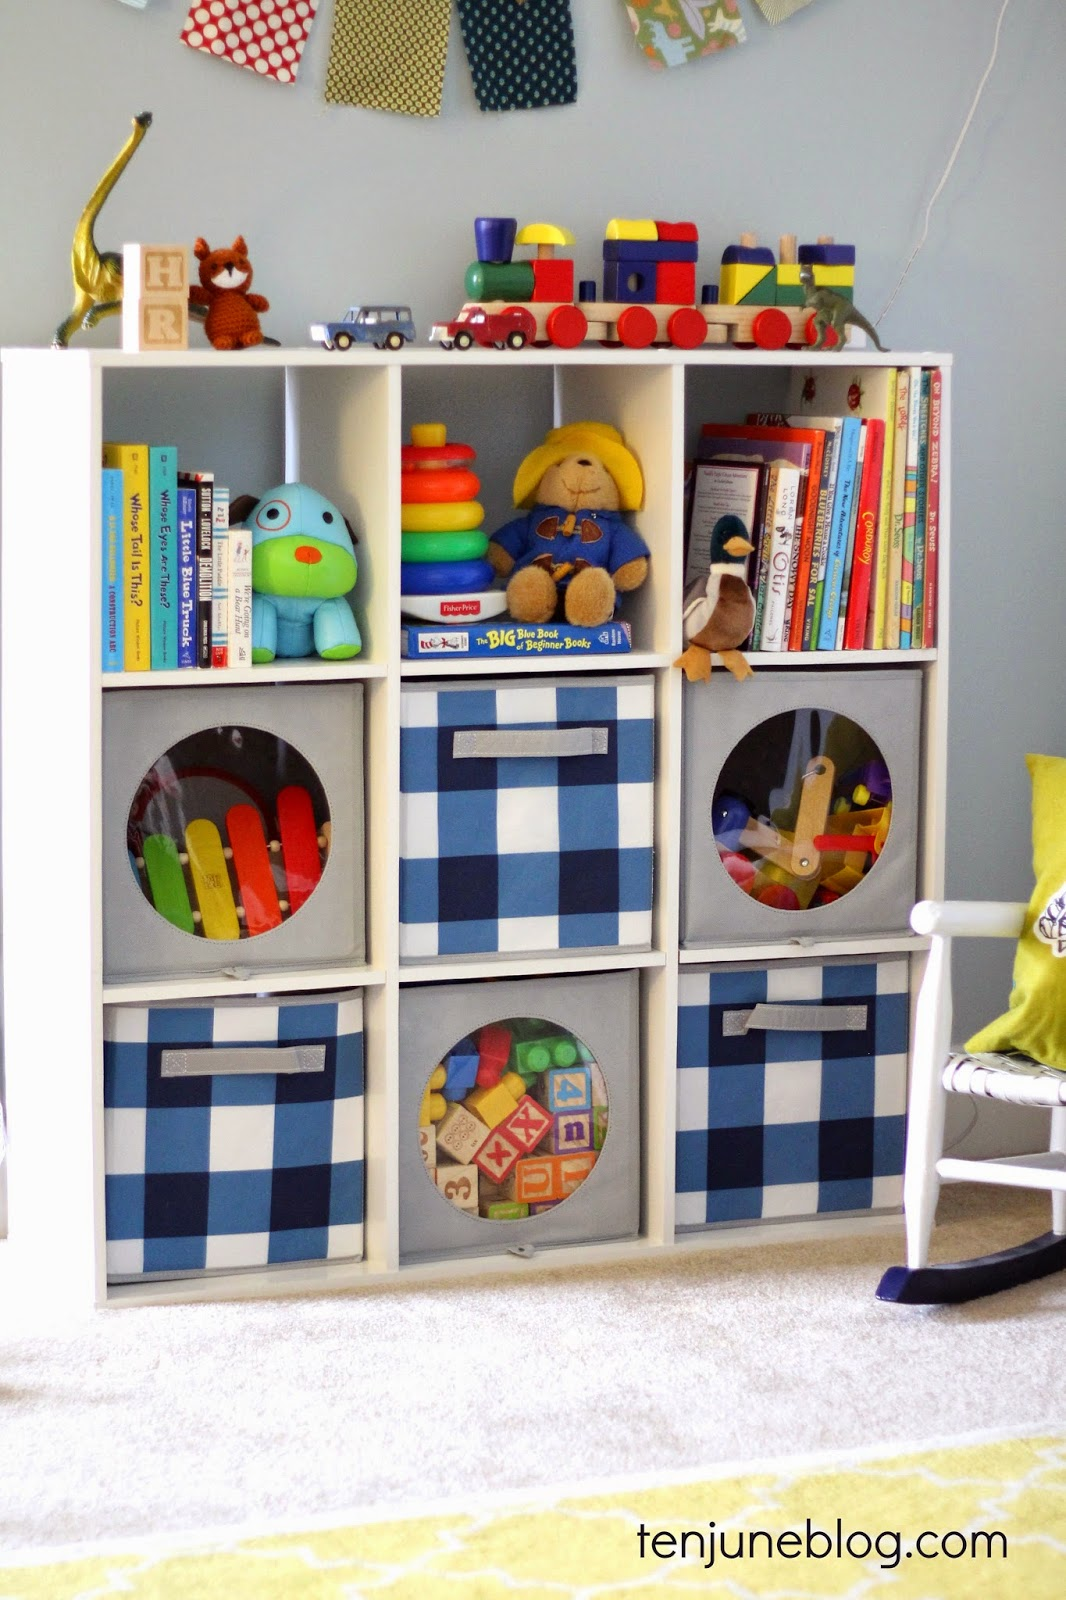 Ten june kids room play room toy storage ideas for Organizers for kids rooms